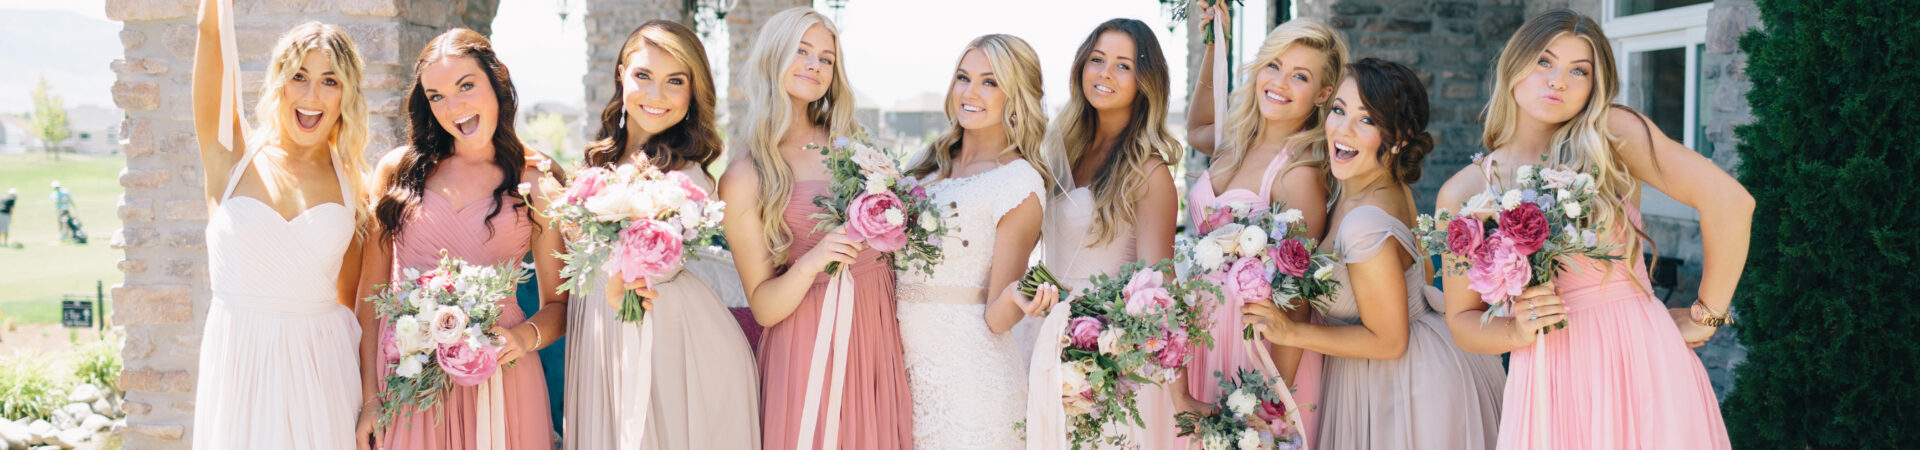 bridesmaids wearing shades of pink lifting bouquets with bride outside